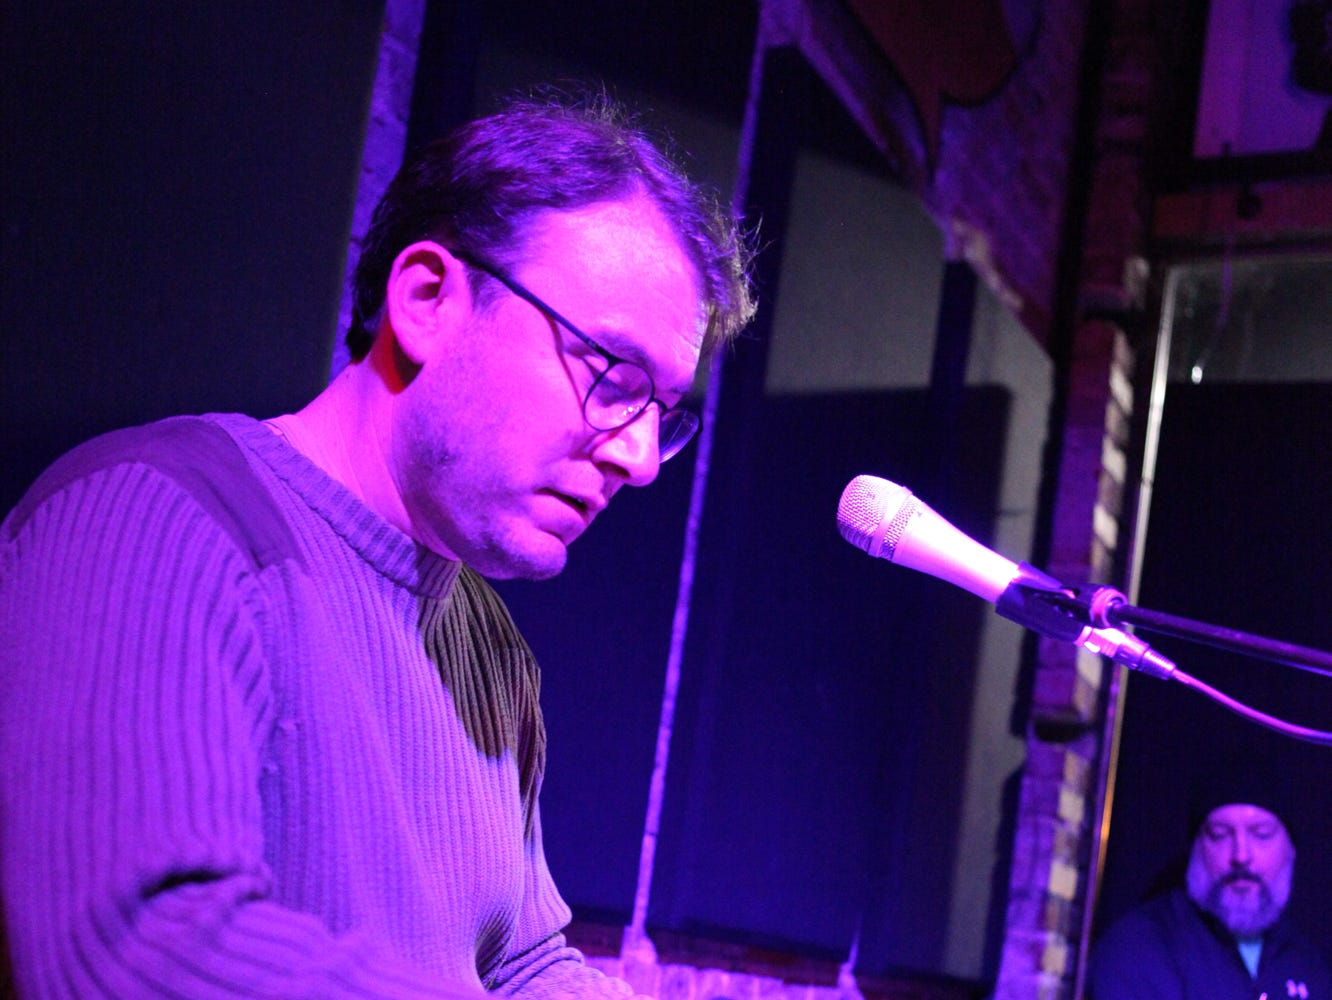 Simple Syrup pianist Adam McFarland Ph.D. Simple Syrup performed their Holiday Jam at Smiley's Acoustic Cafe on December 22, 2018.